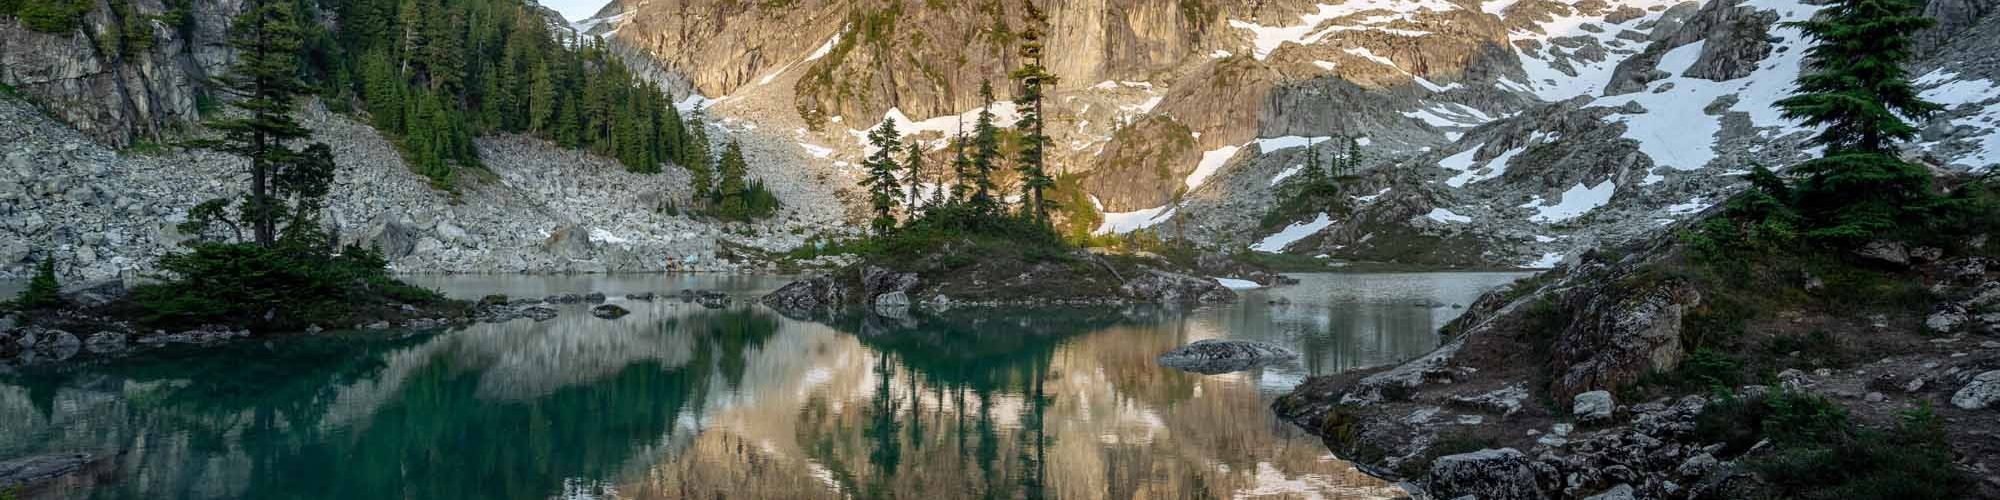 ML Coast Mountains Summer Fall Issue Out Now Watersprite Lake Anatole Tuzlak Photo